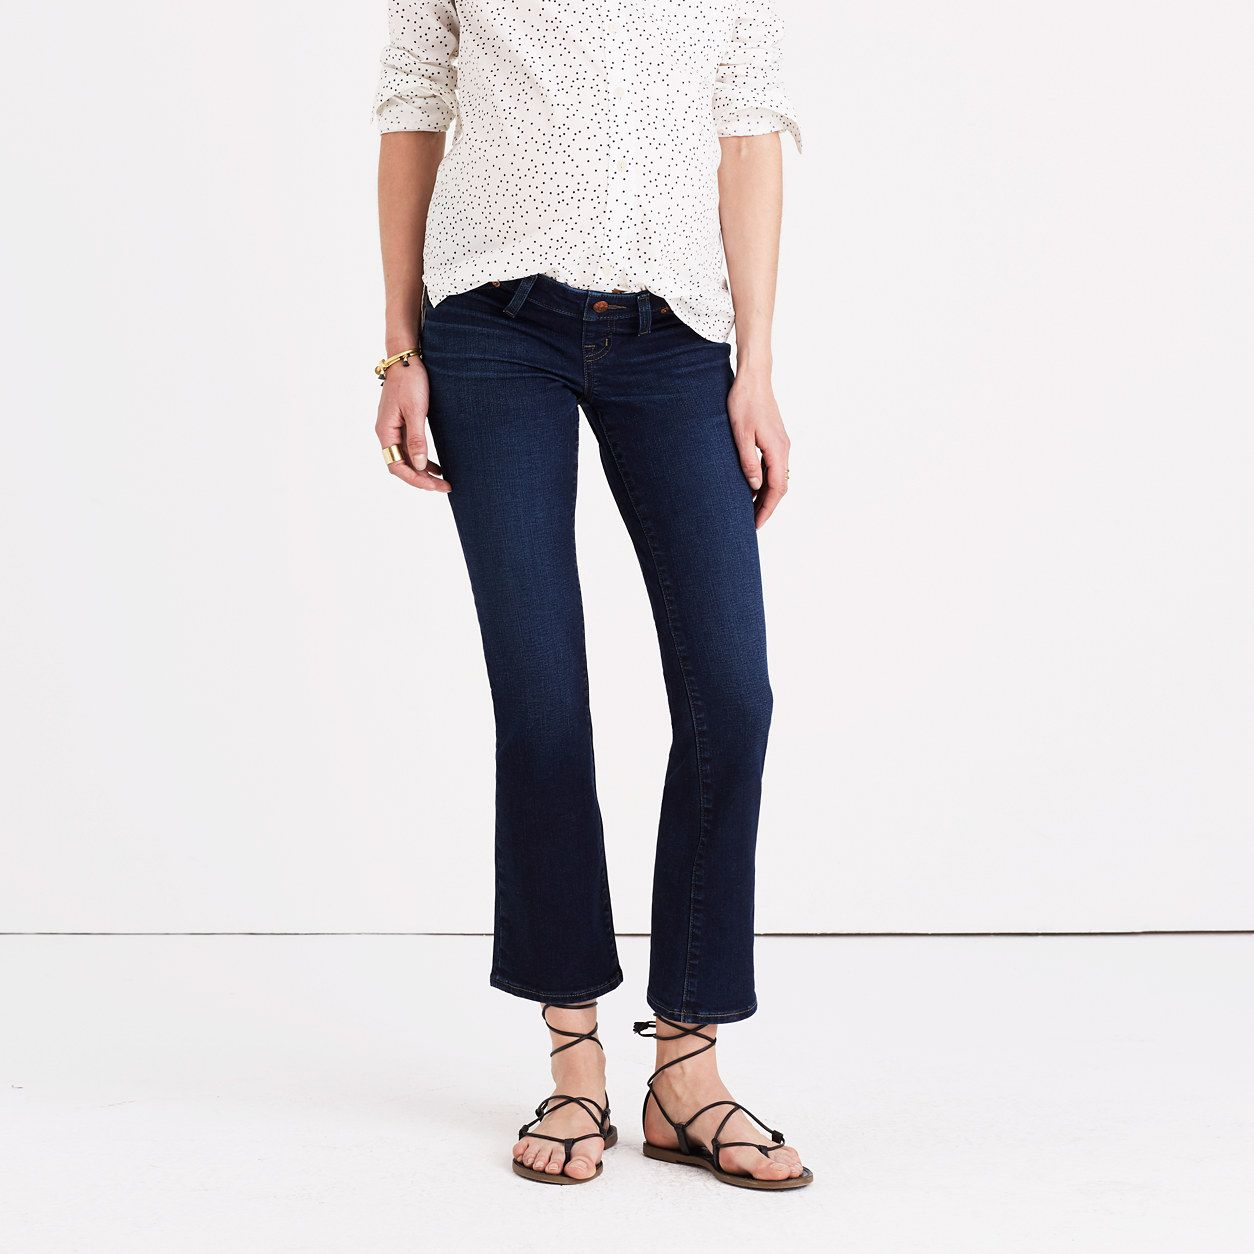 Maternity Cali Demi-Boot Jeans in Hayes Wash : maternity | Madewell